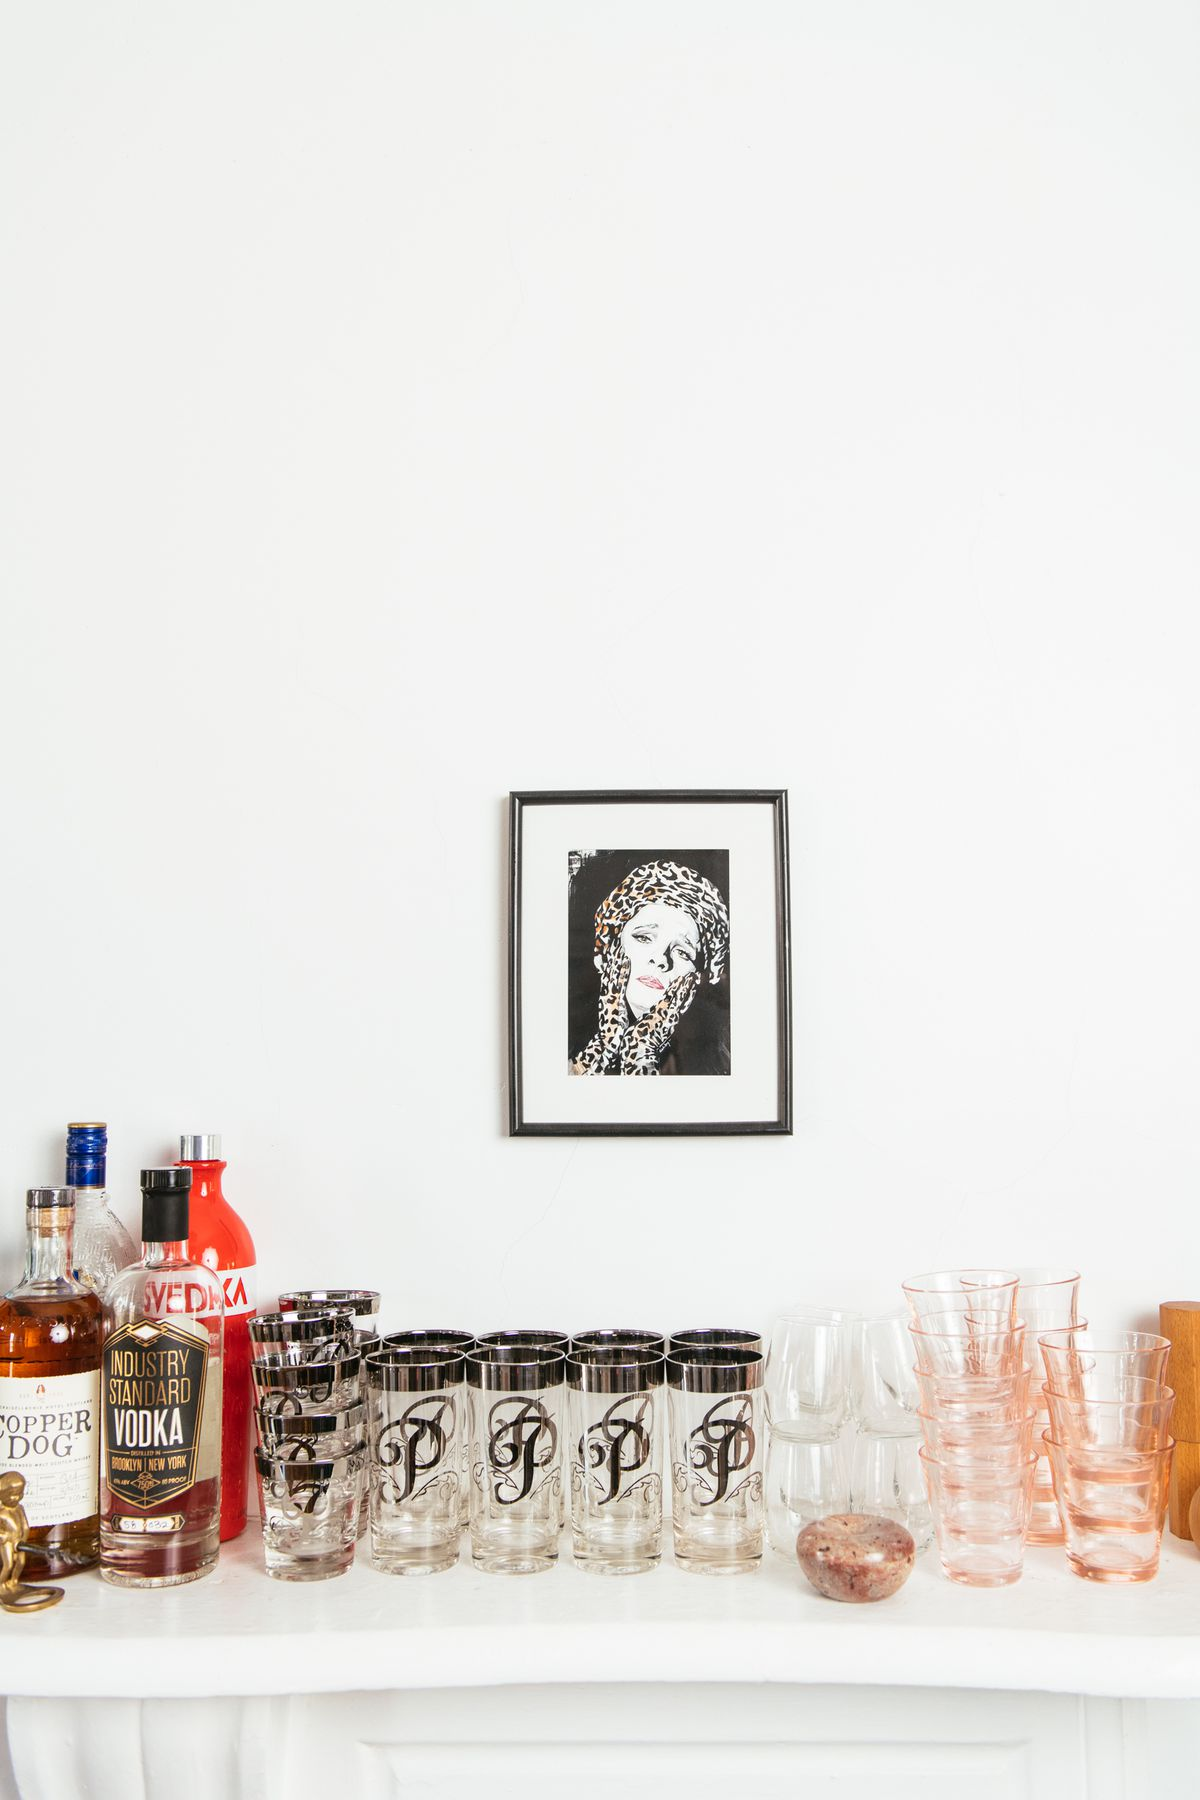 A white bar cart with bottles of liquor, and an assortment of glasses. A framed work of art which is a portrait of a woman in black and white hangs above the bar cart.